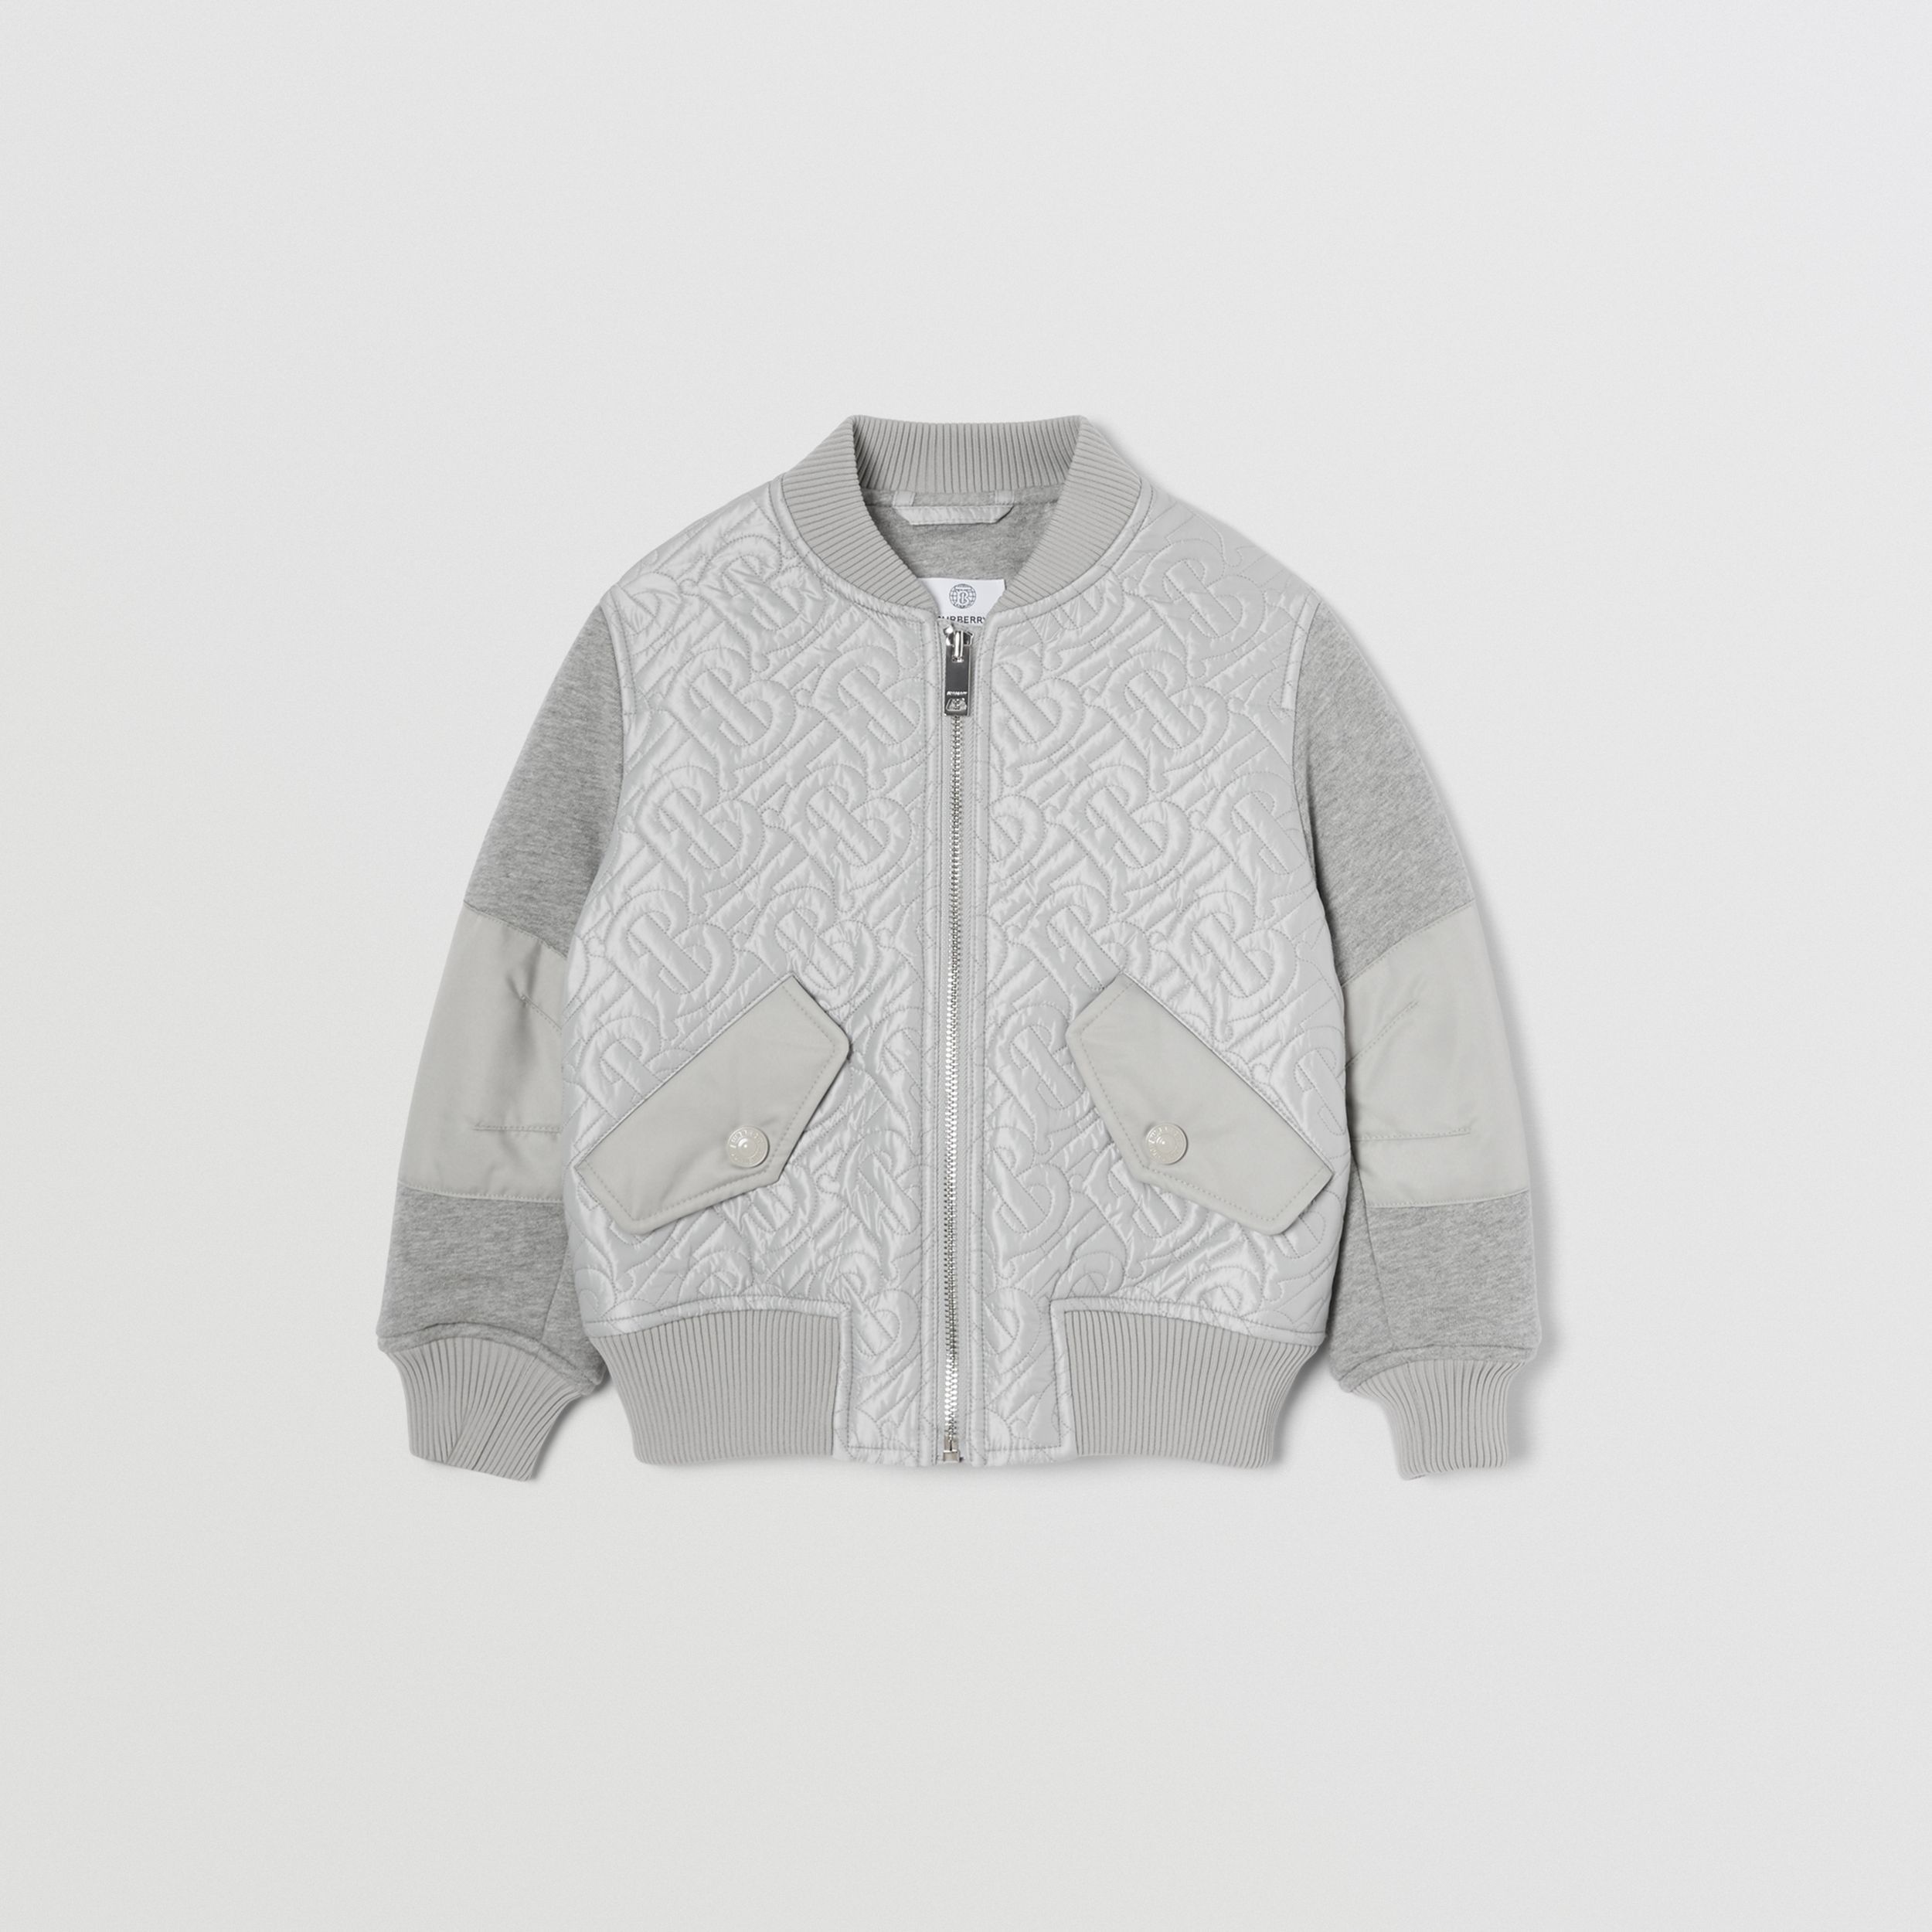 Monogram Quilted Recycled Polyester Bomber Jacket in Light Grey | Burberry - 1